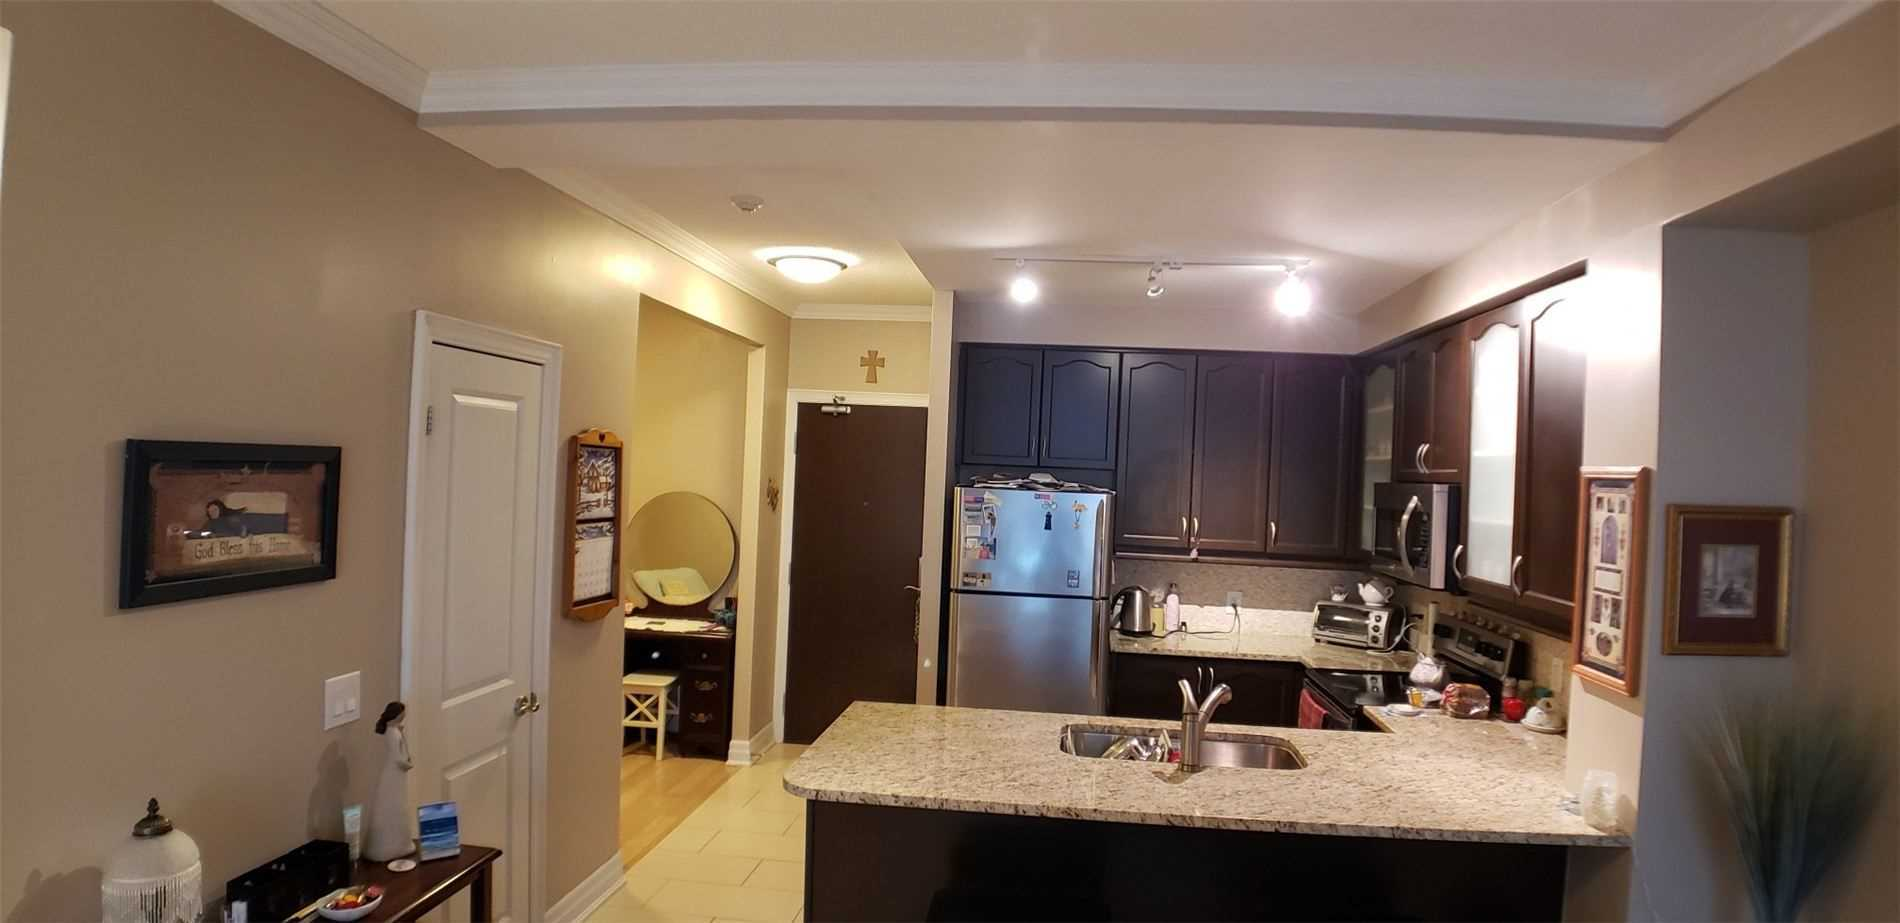 Image 2 of 15 showing inside of 1 Bedroom Condo Apt Apartment for Sale at 100 John St Unit# 803, Brampton L6W0A8